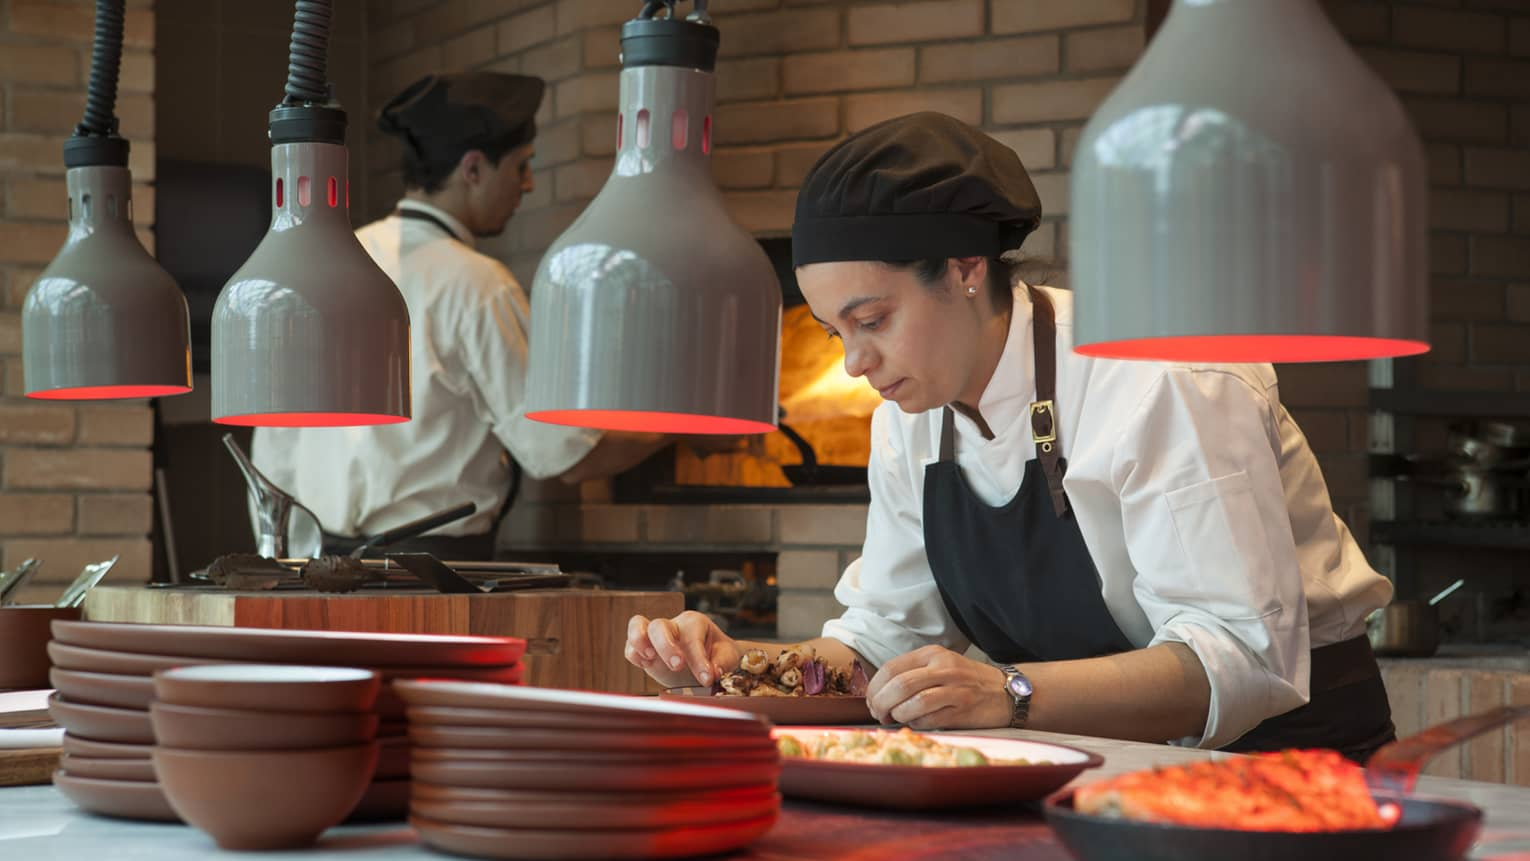 Chef in black hat, apron garnishes dish under heat lamps in Elena Restaurant kitchen